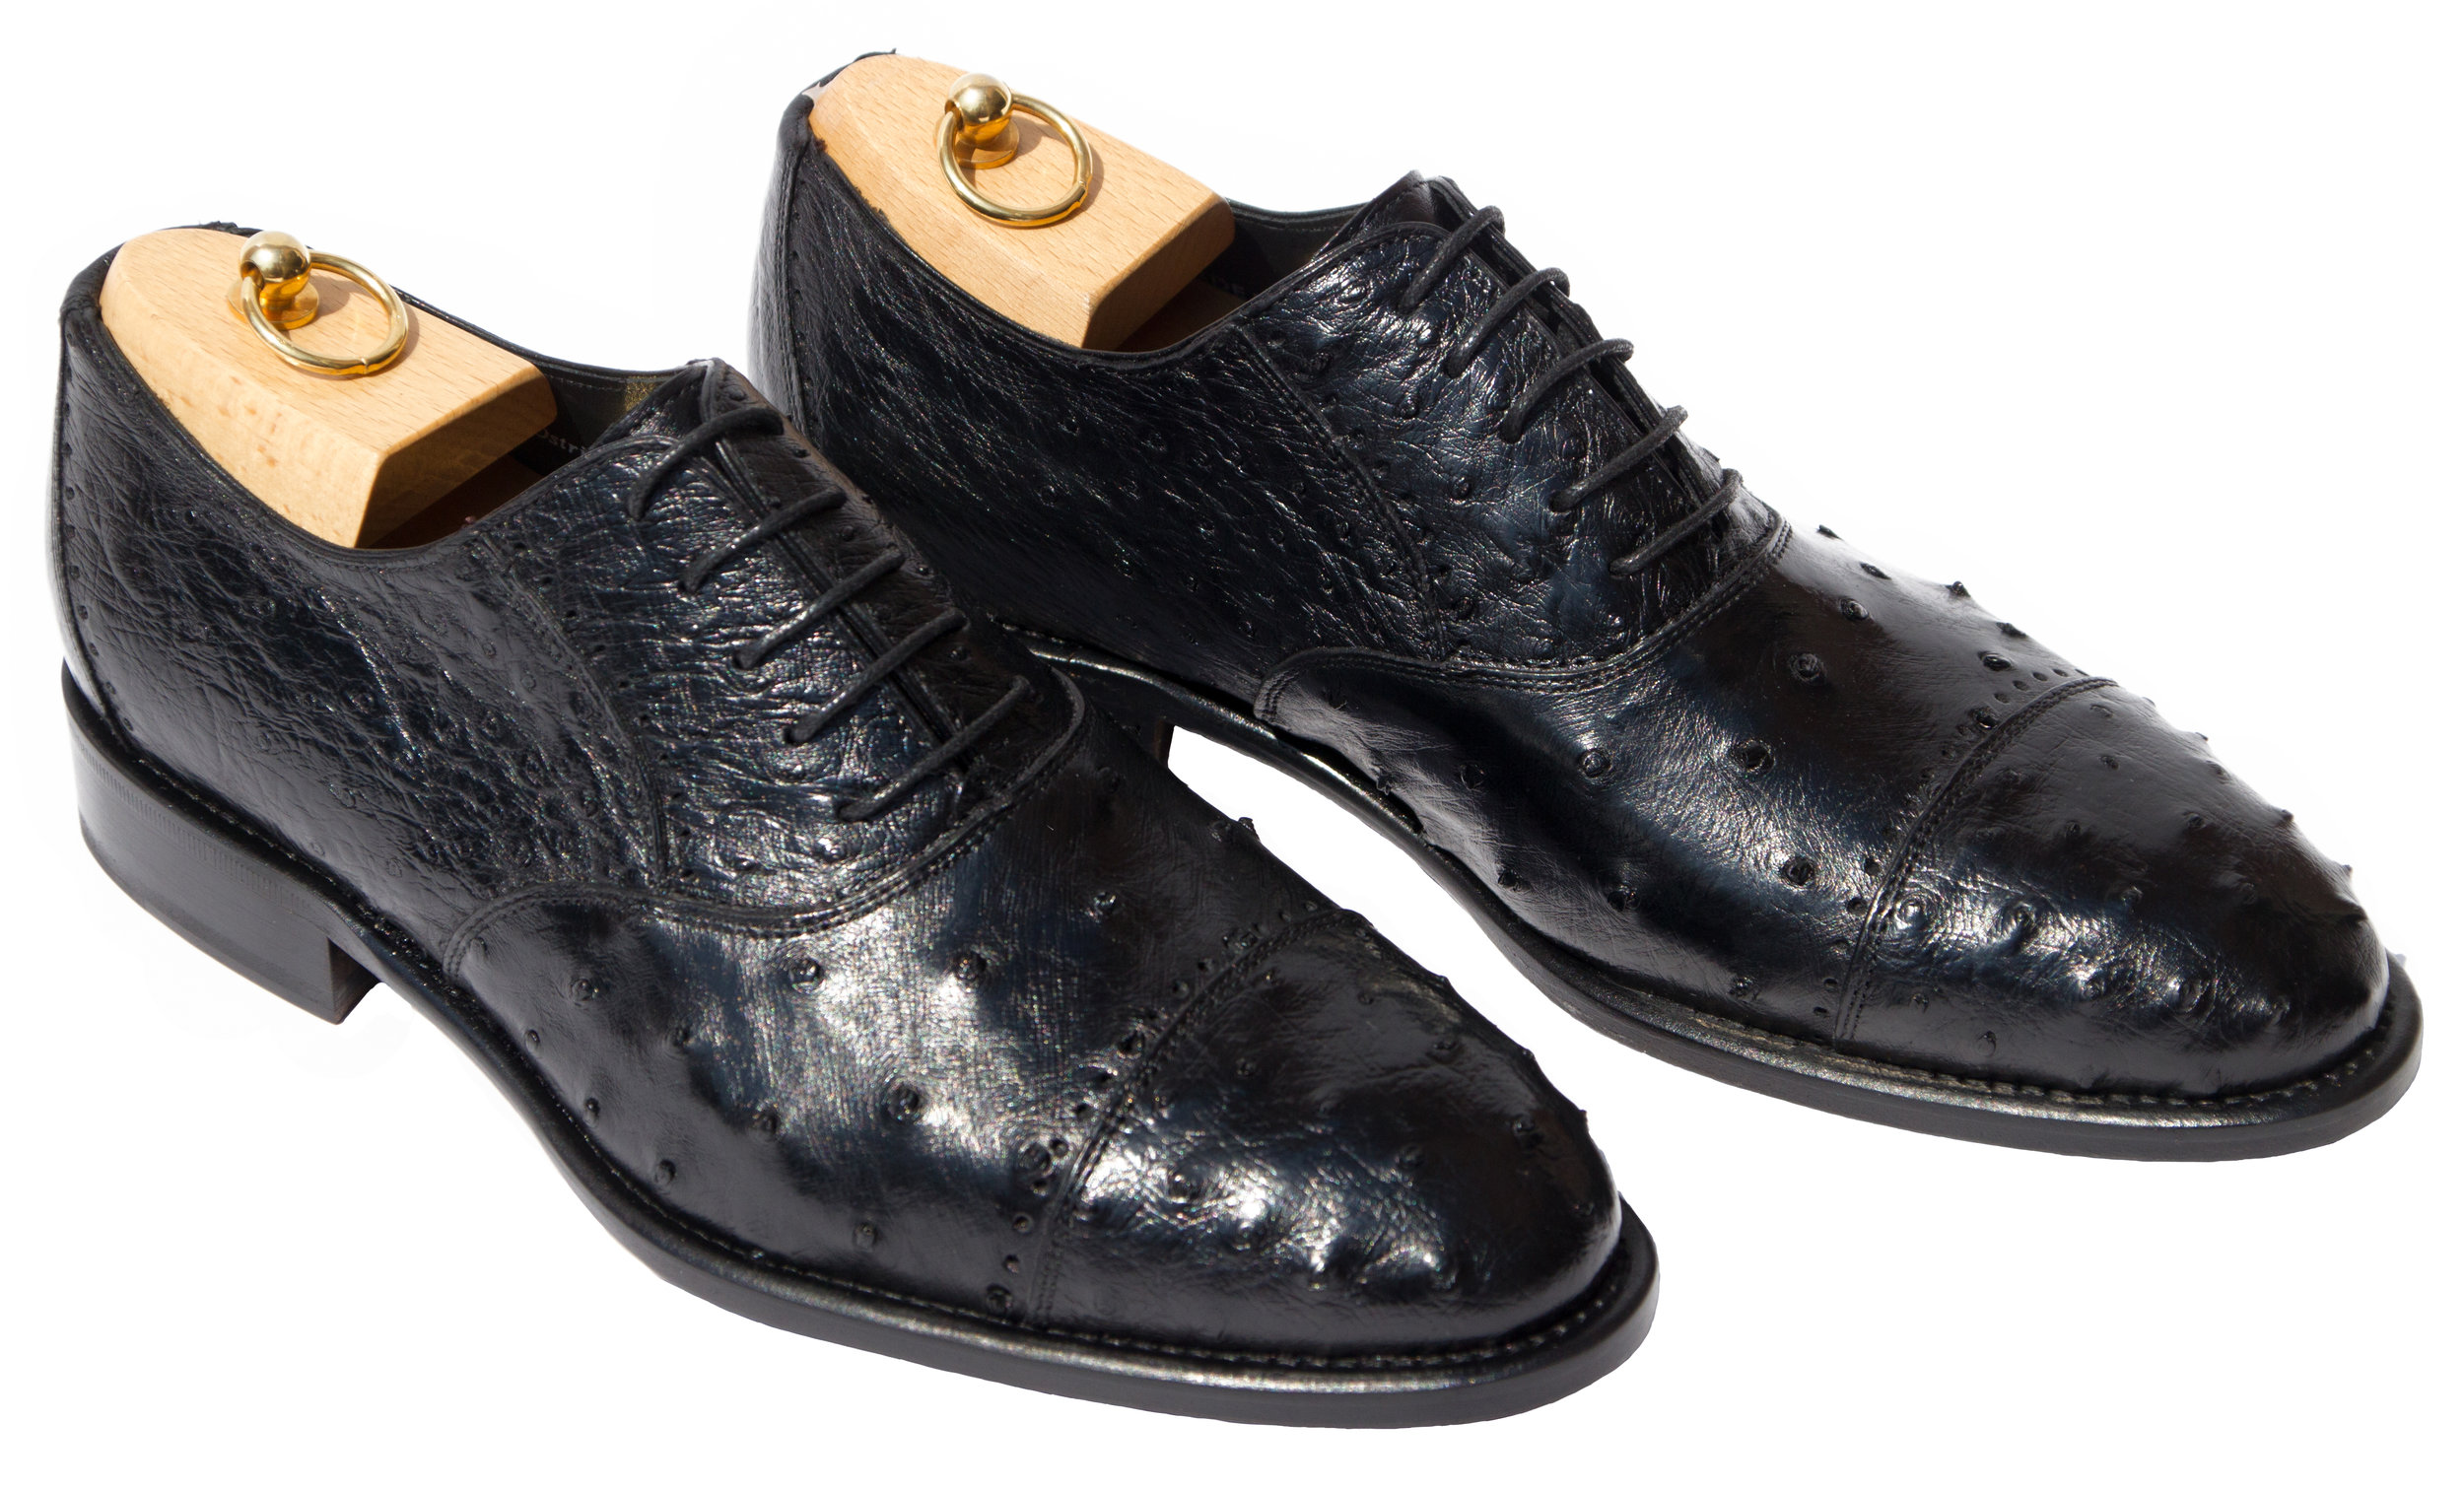 Style # H777: Black  Ostrich Quill Cap Toe Balmoral Lace-Up  Sizes available: 7 to 13 US, including half sizes